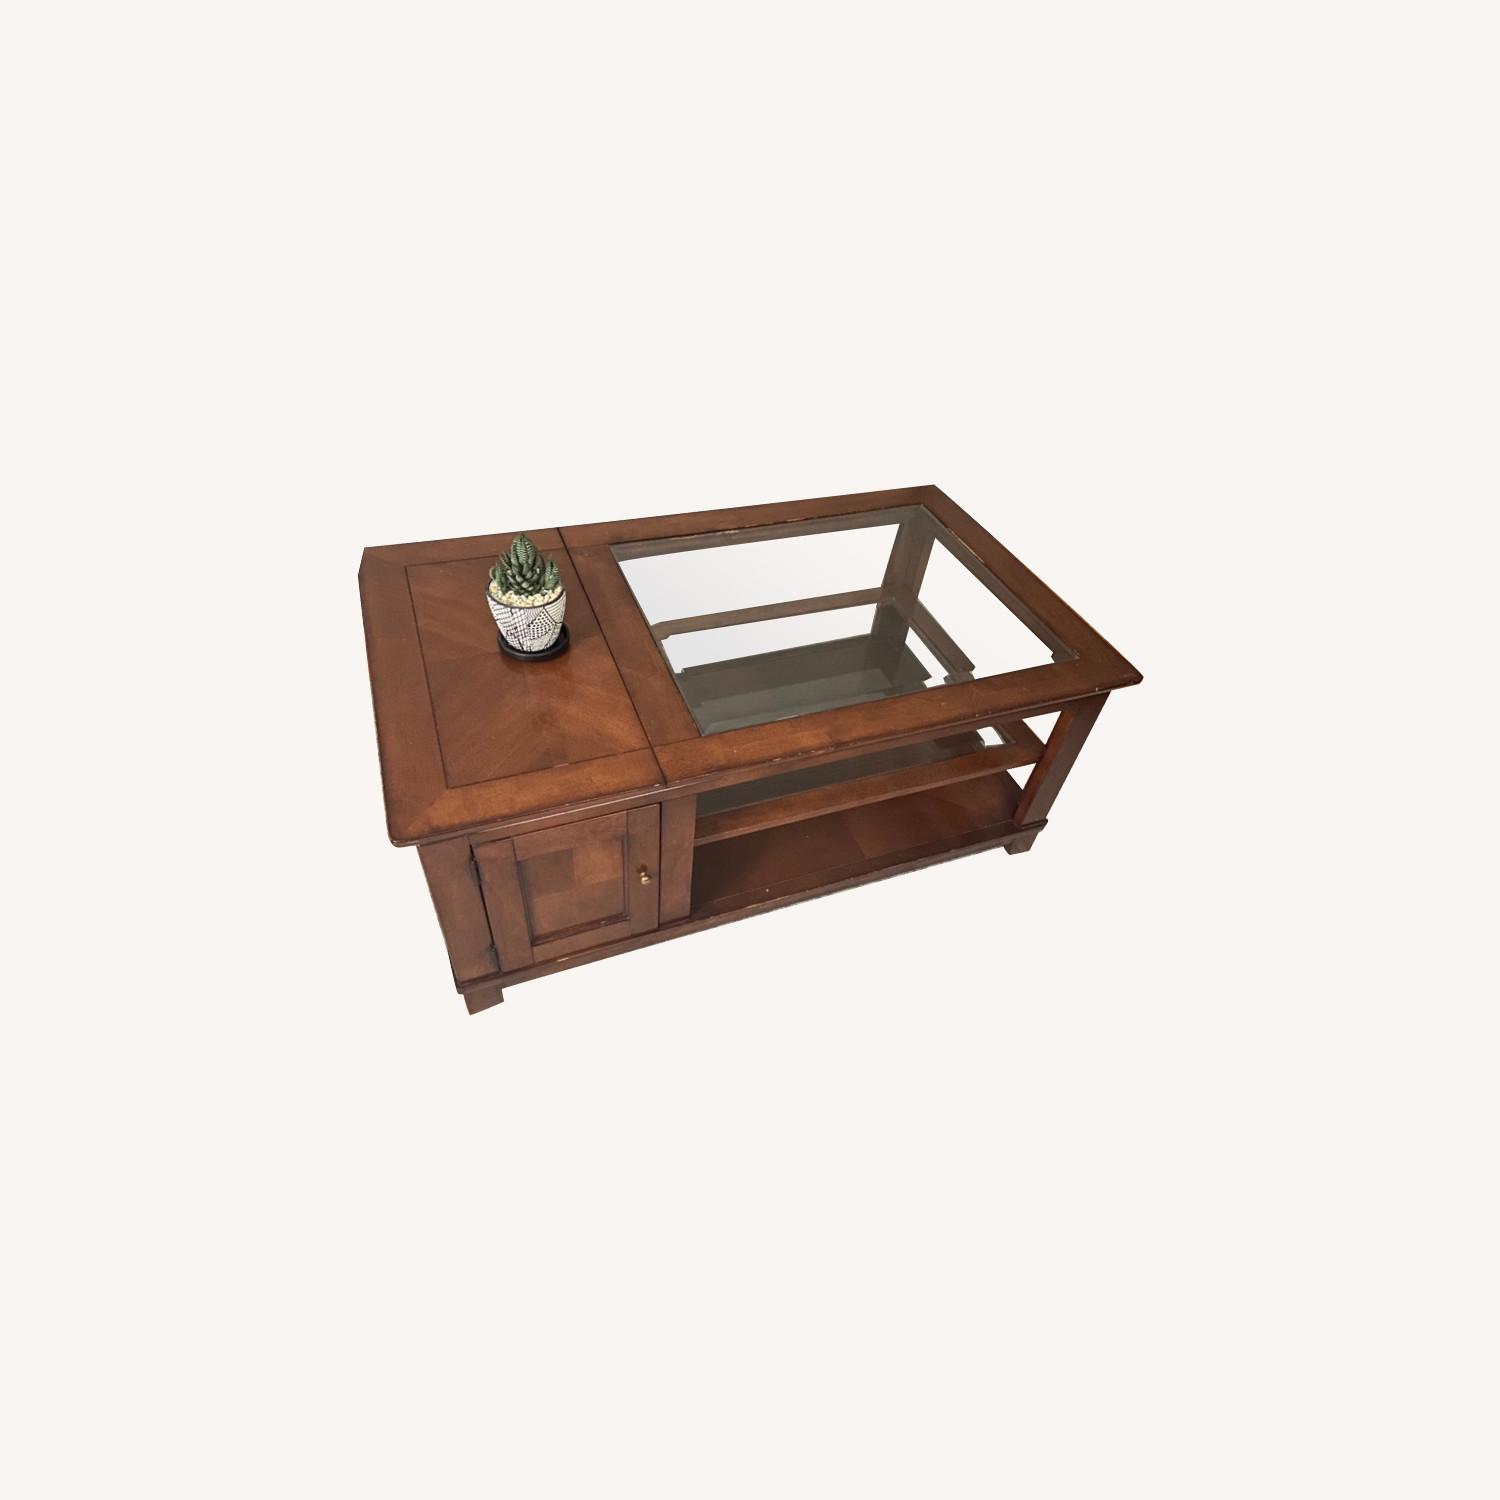 Brown Wooden Coffee Table with Glass Shelves - image-0